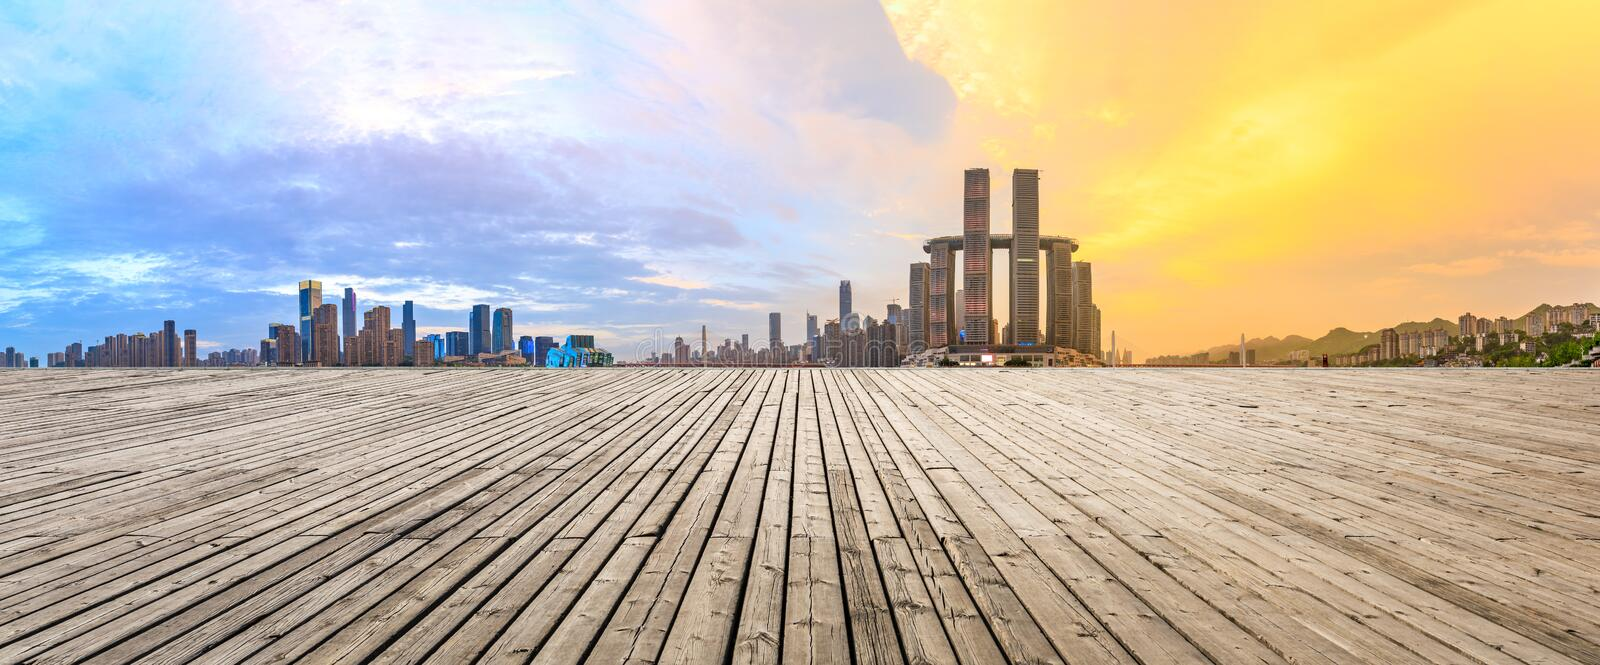 Plank square and City Skyline in Chongqing. Sunset Plank Square and City Skyline in Chongqing royalty free stock image